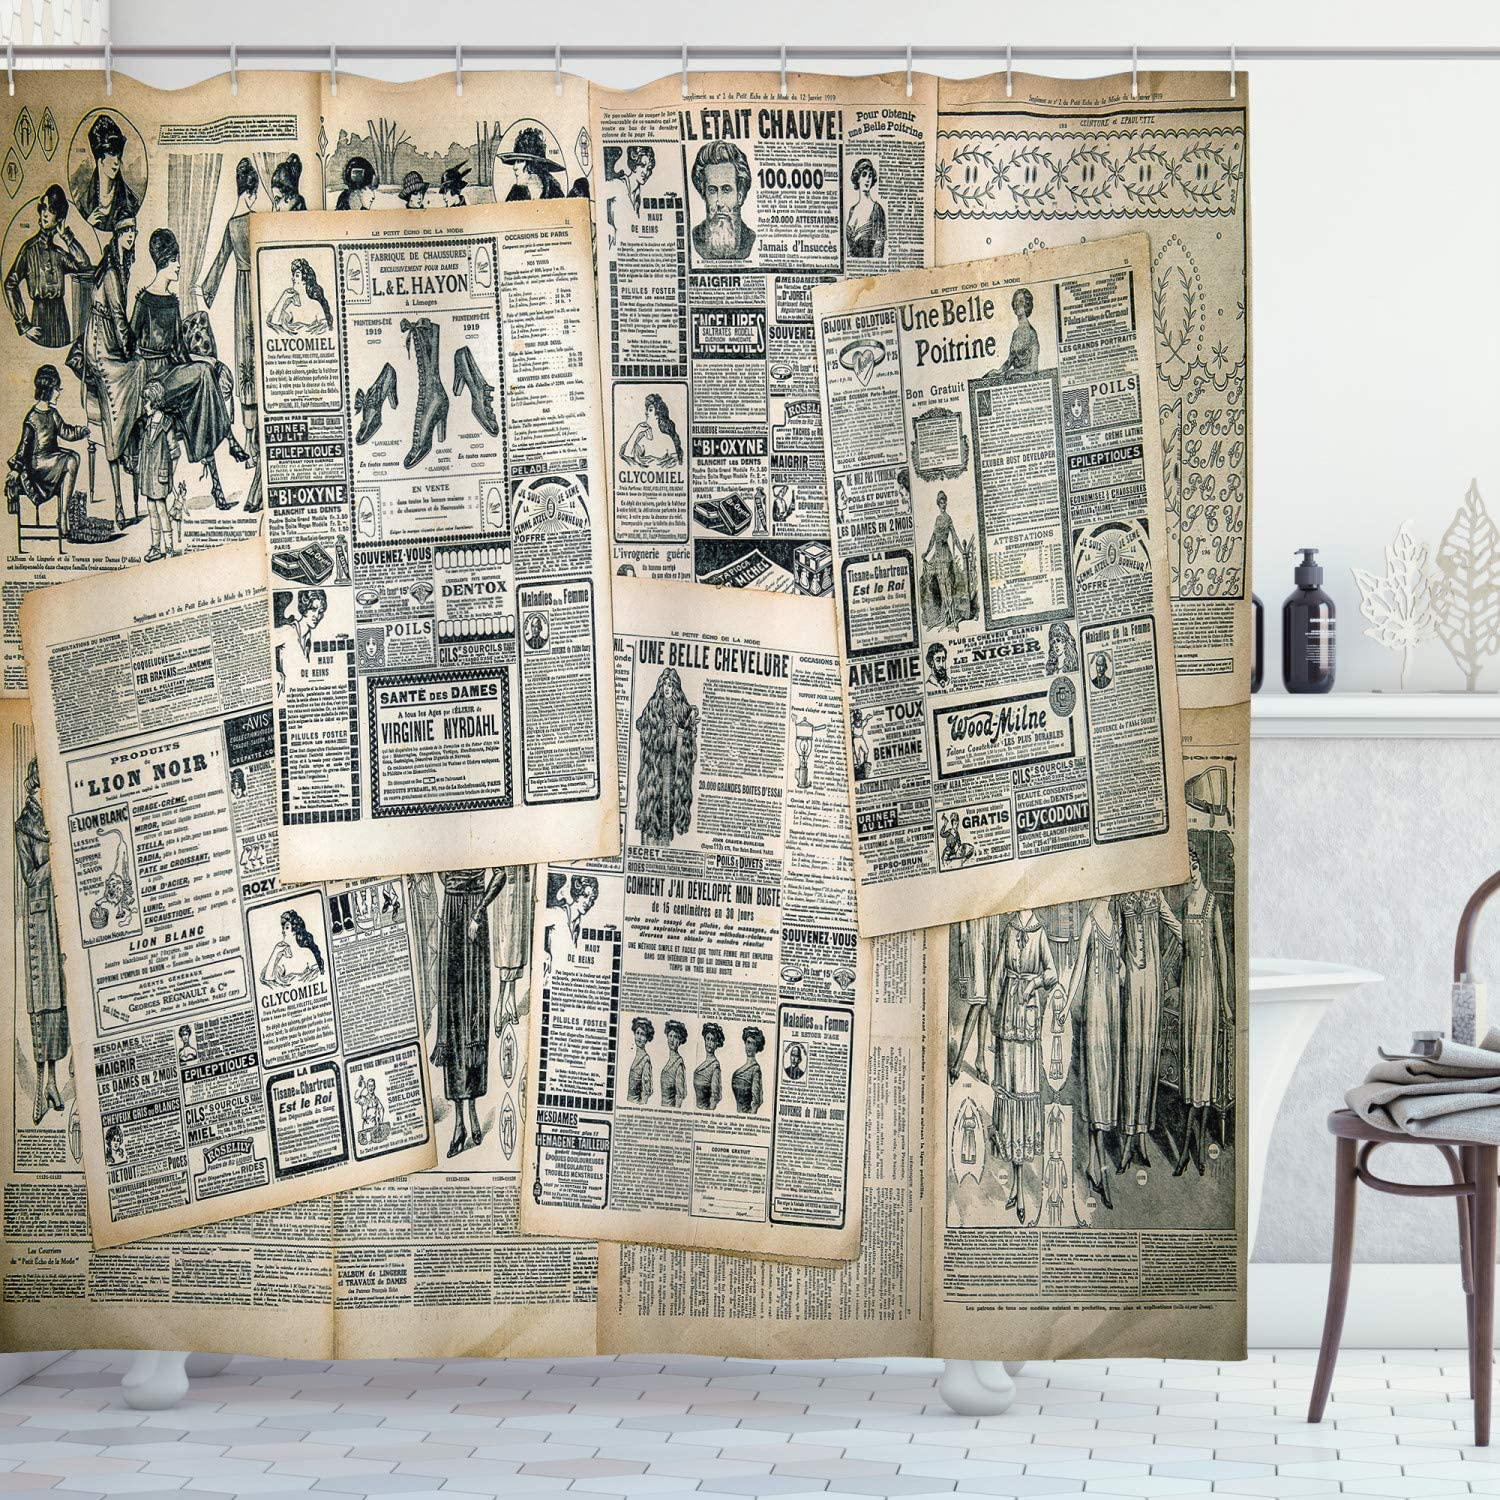 Amazon Com Ambesonne Antique Shower Curtain Vintage Style Sepia Toned Newspaper Print With Old Fashioned Illustrations Cloth Fabric Bathroom Decor Set With Hooks 75 Long Green Beige Home Kitchen